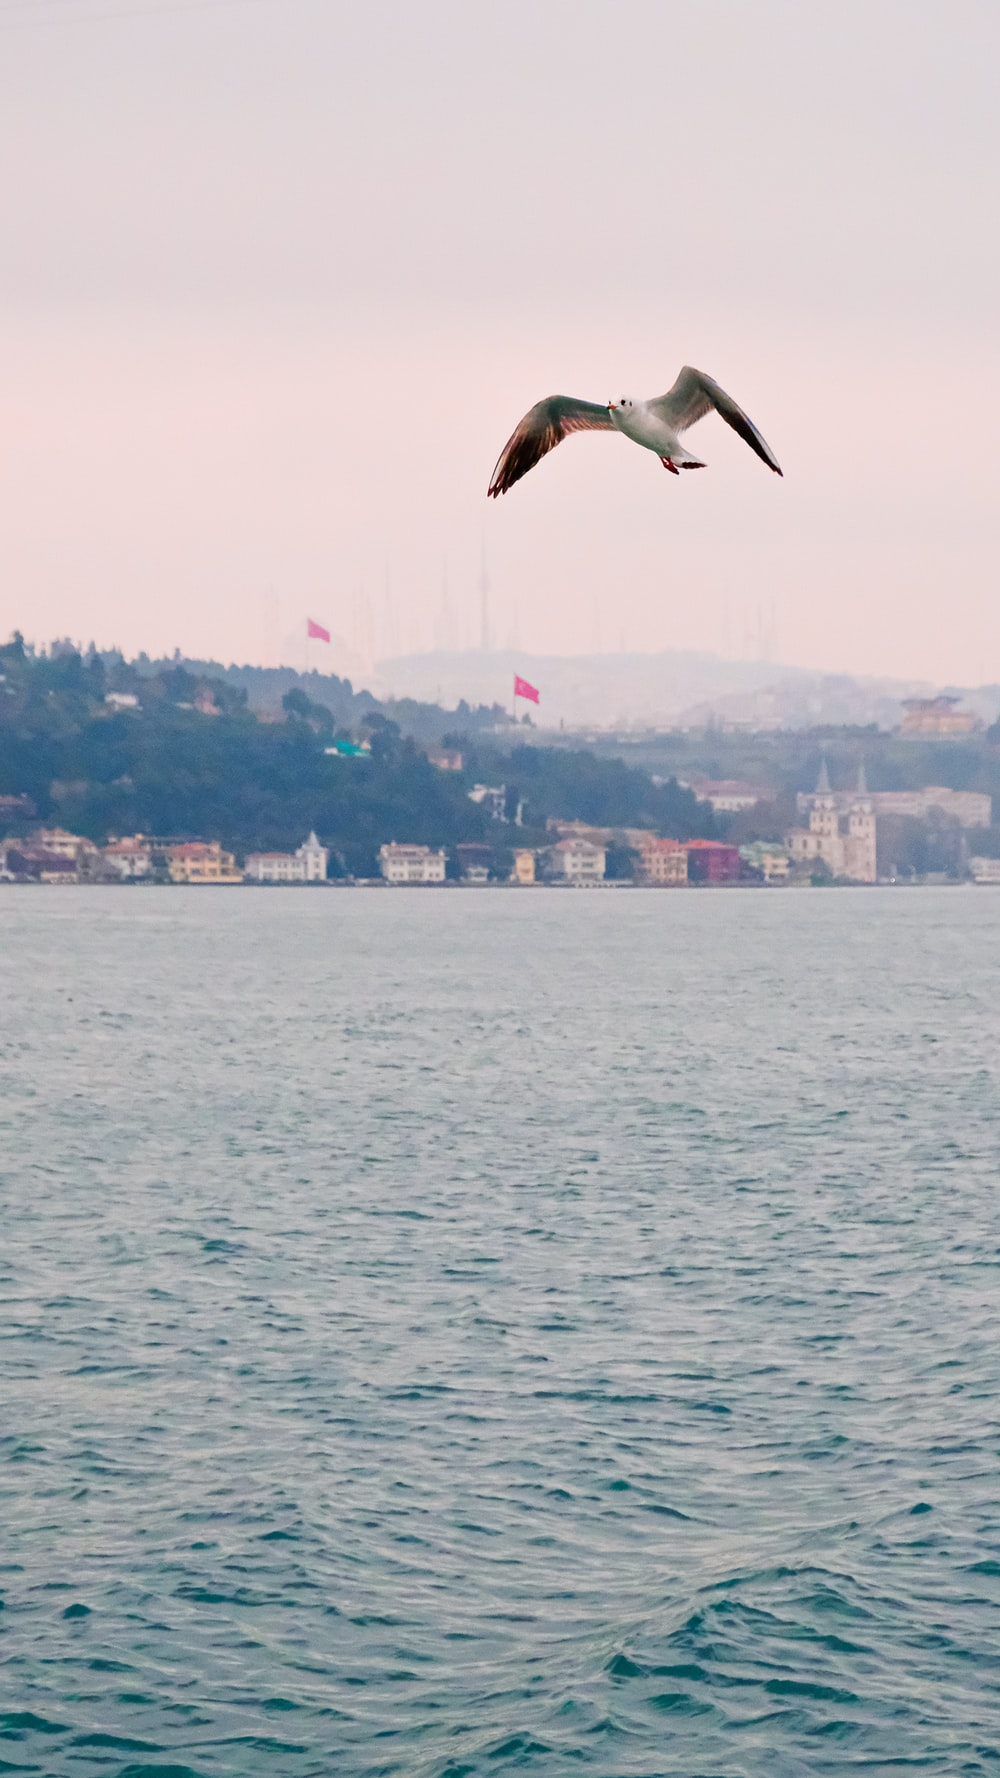 white bird flying over the city during daytime